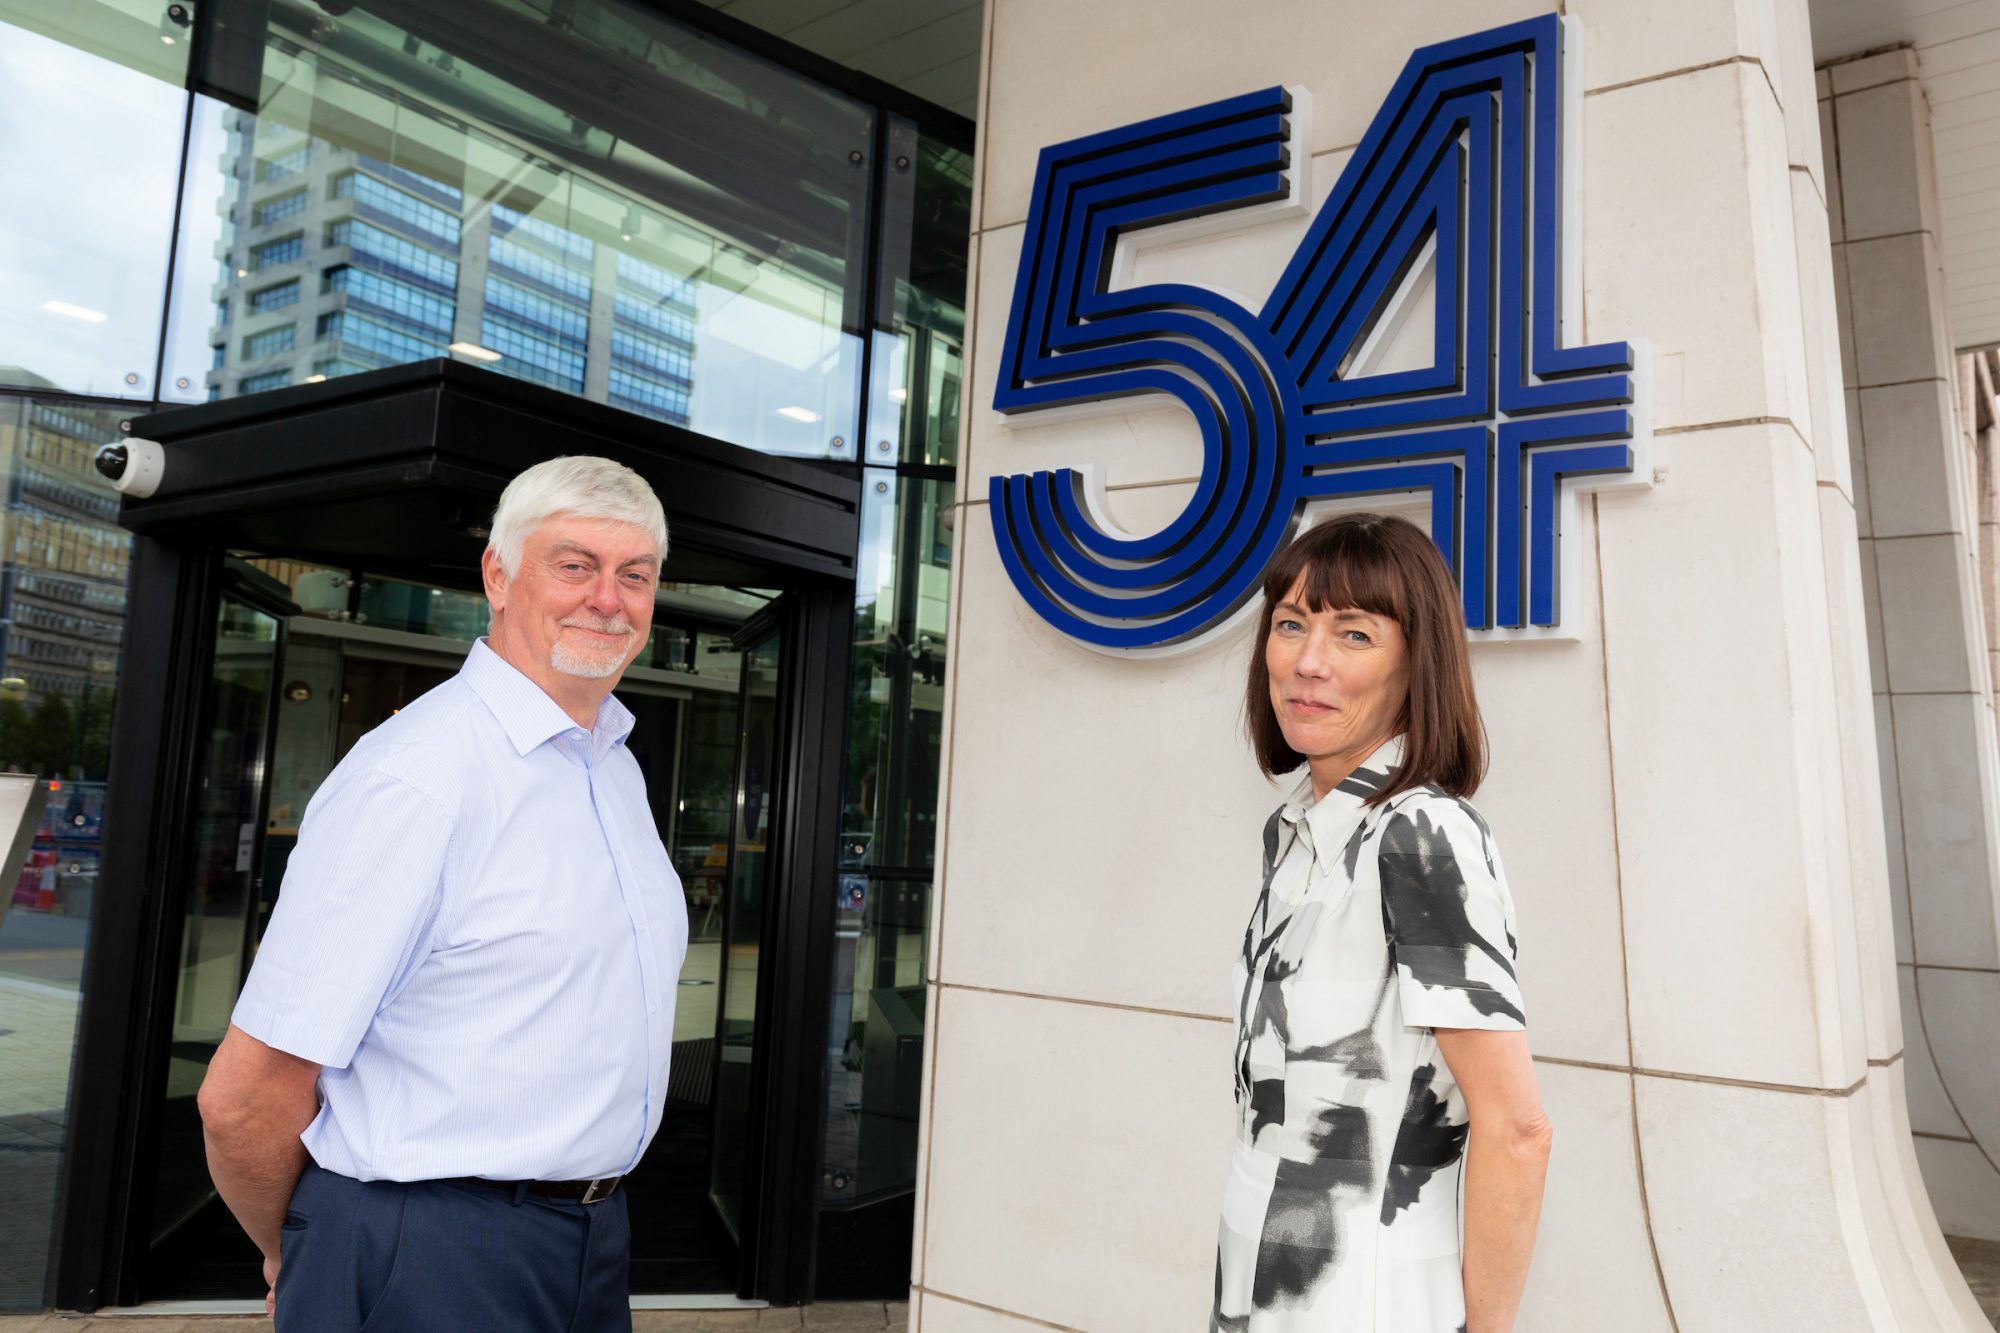 Outgoing-BHSF-group-chief-executive-Ian-Galer-and-incoming-BHSF-group-chief-executive-Heidi-Stewart-at-54-Hagley-Road